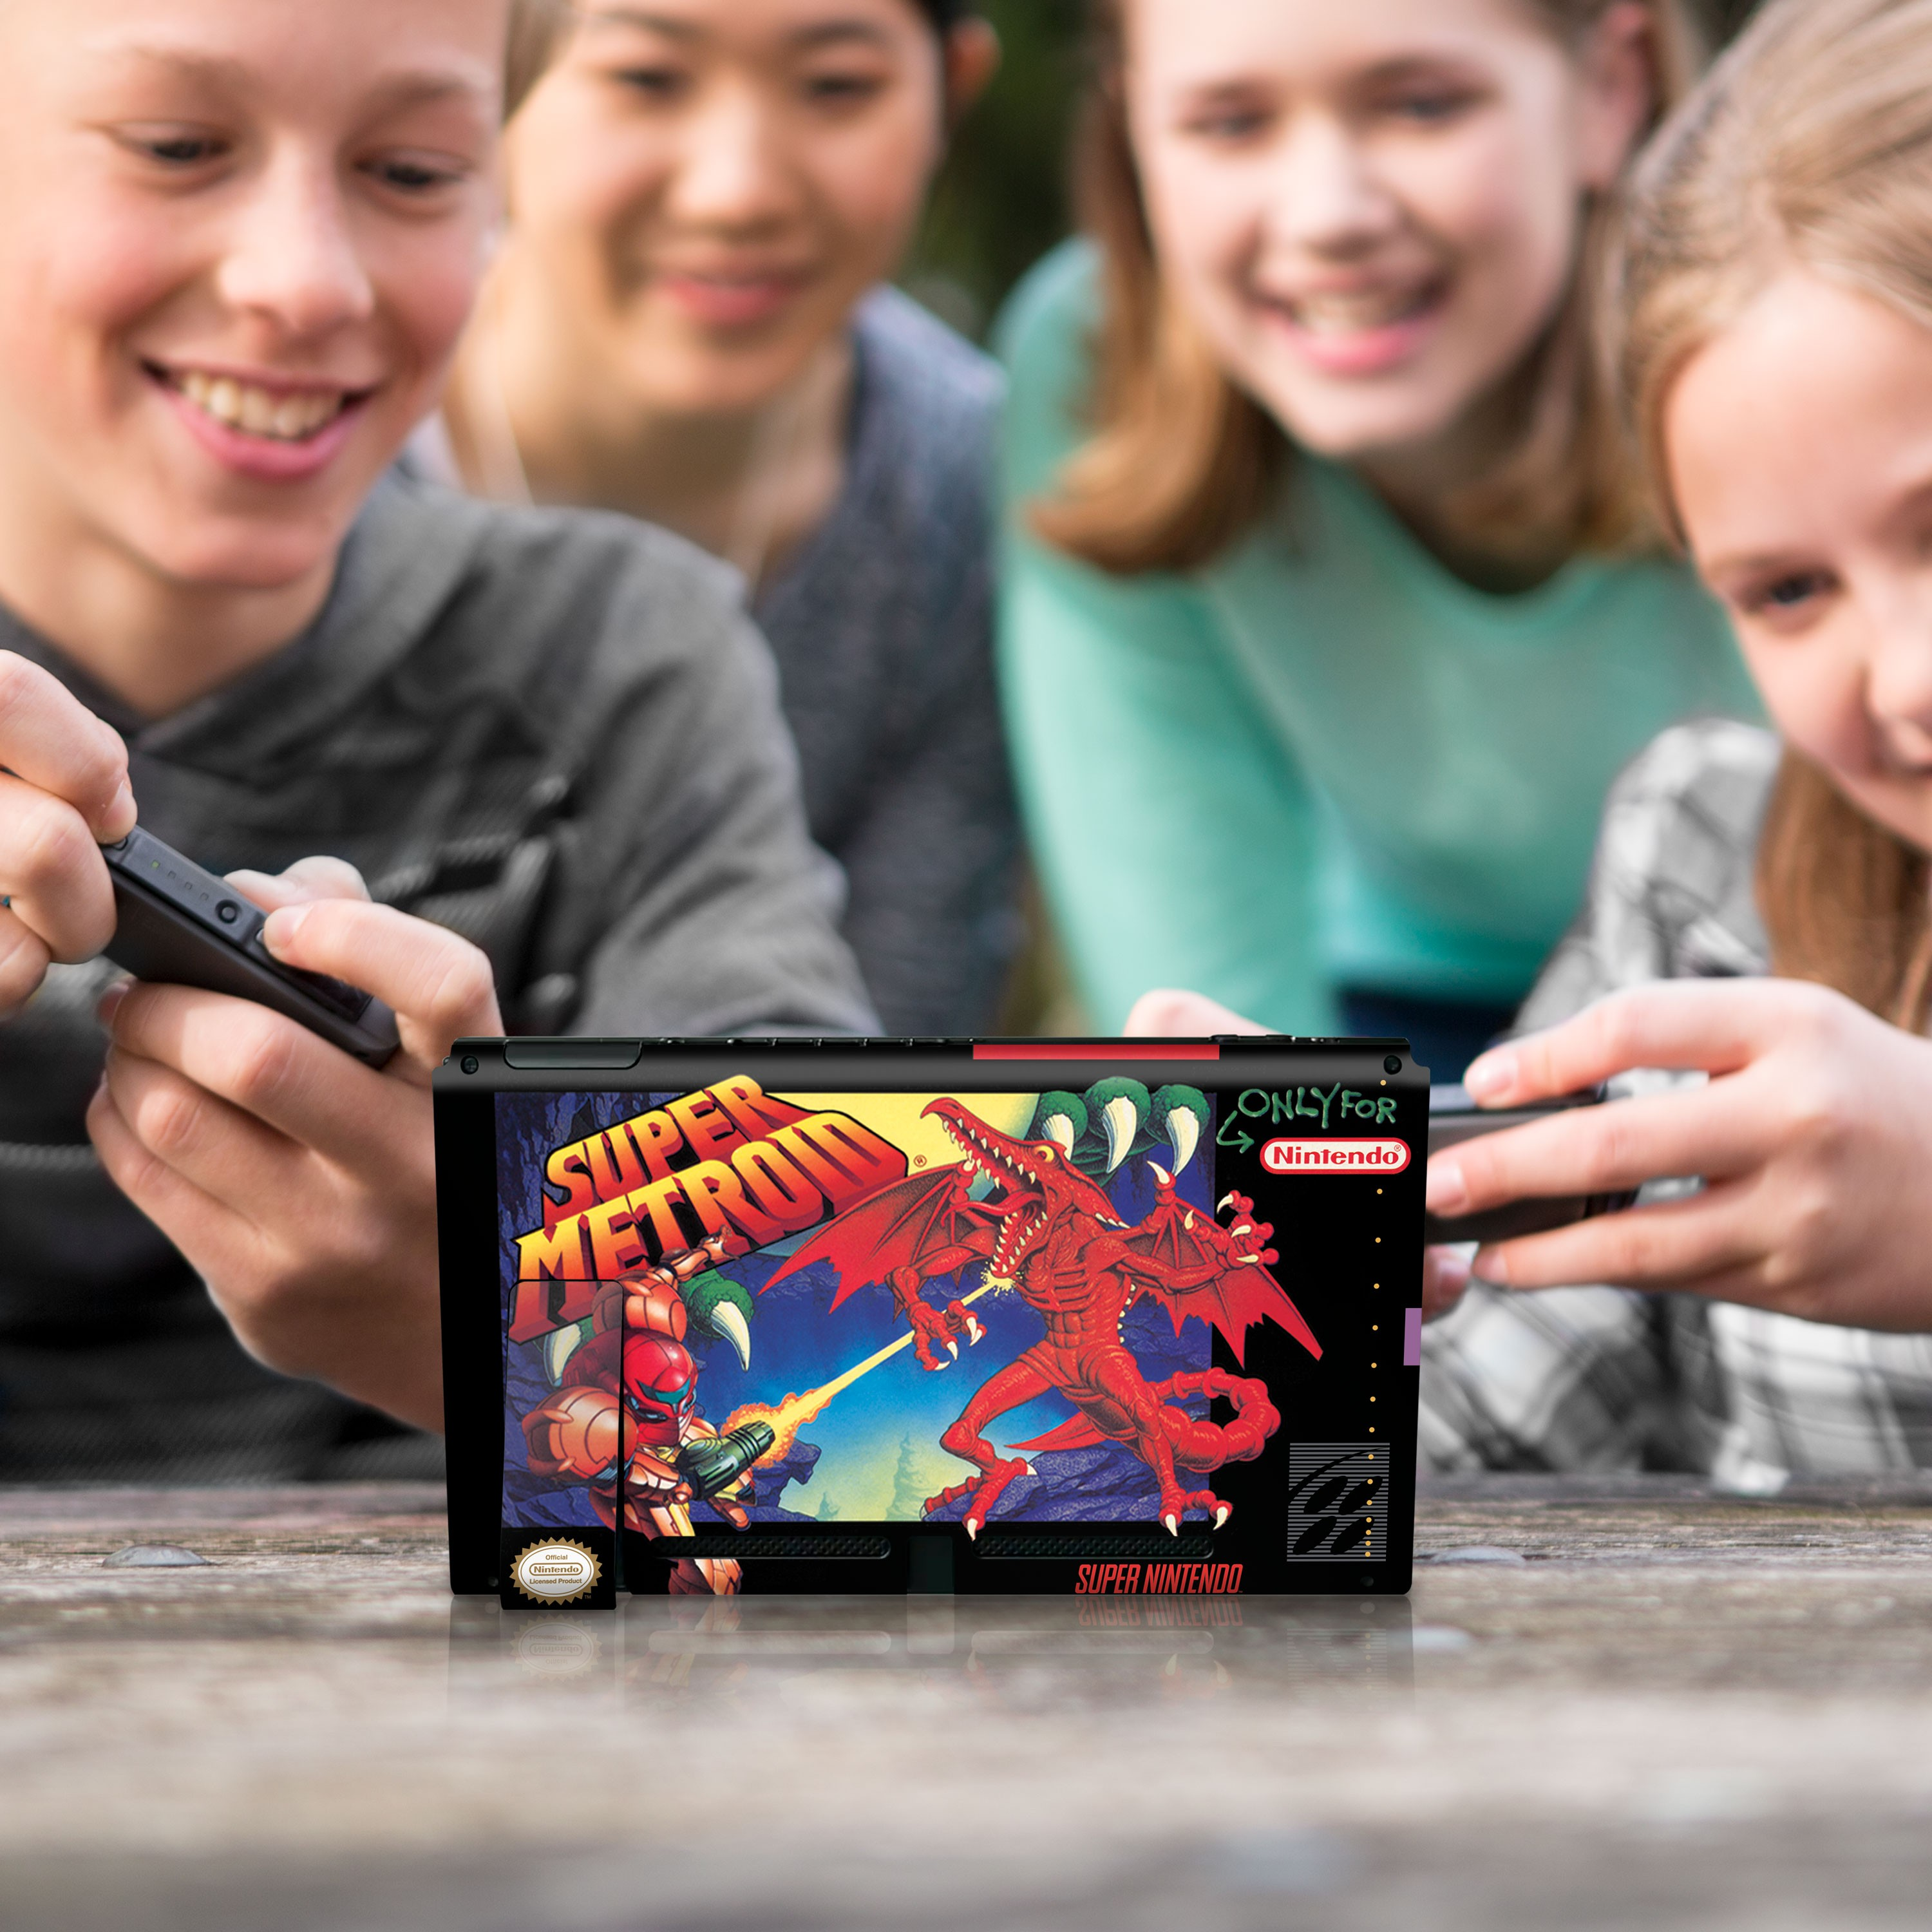 """Super Metroid™ """"Super Metroid"""" Nintendo Switch™ Console Skin + Joy-Con™ Skin + Joy-Con™ Grip Skin + Screen Protector Bundle Assortment, Officially Licensed by Nintendo"""